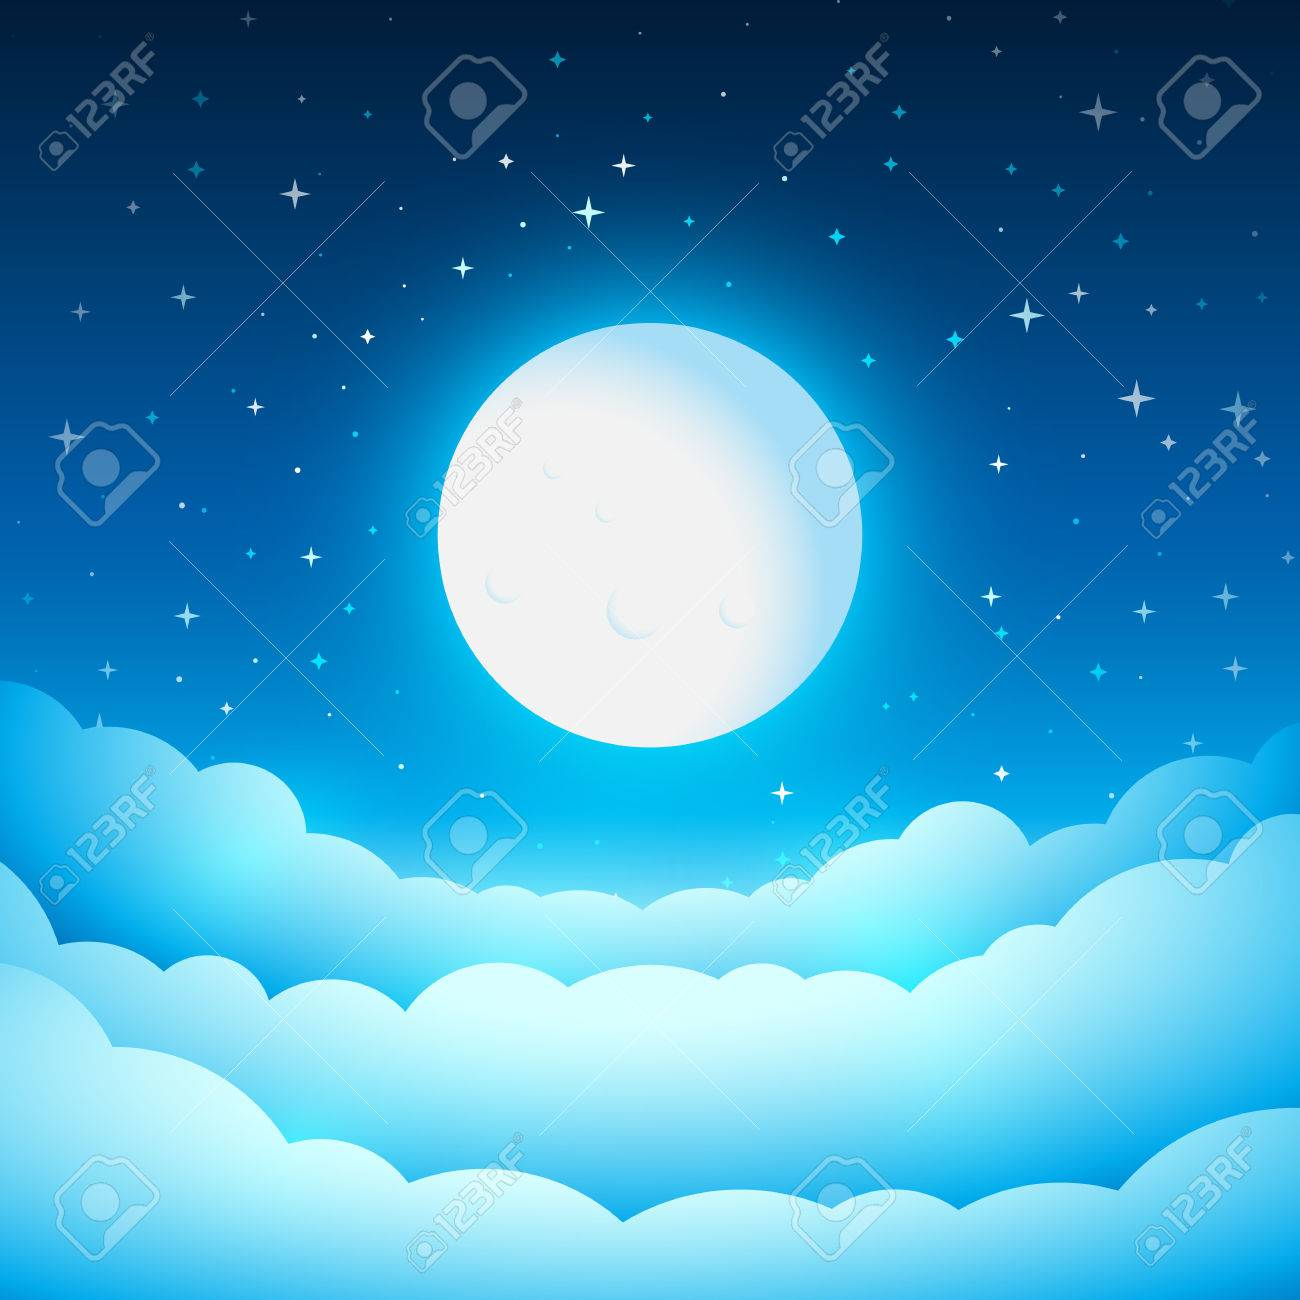 Full moon in the night sky. Fairy Tale cover or background. Bright moonlight above the clouds. Vector dreamy illustration. - 64941553